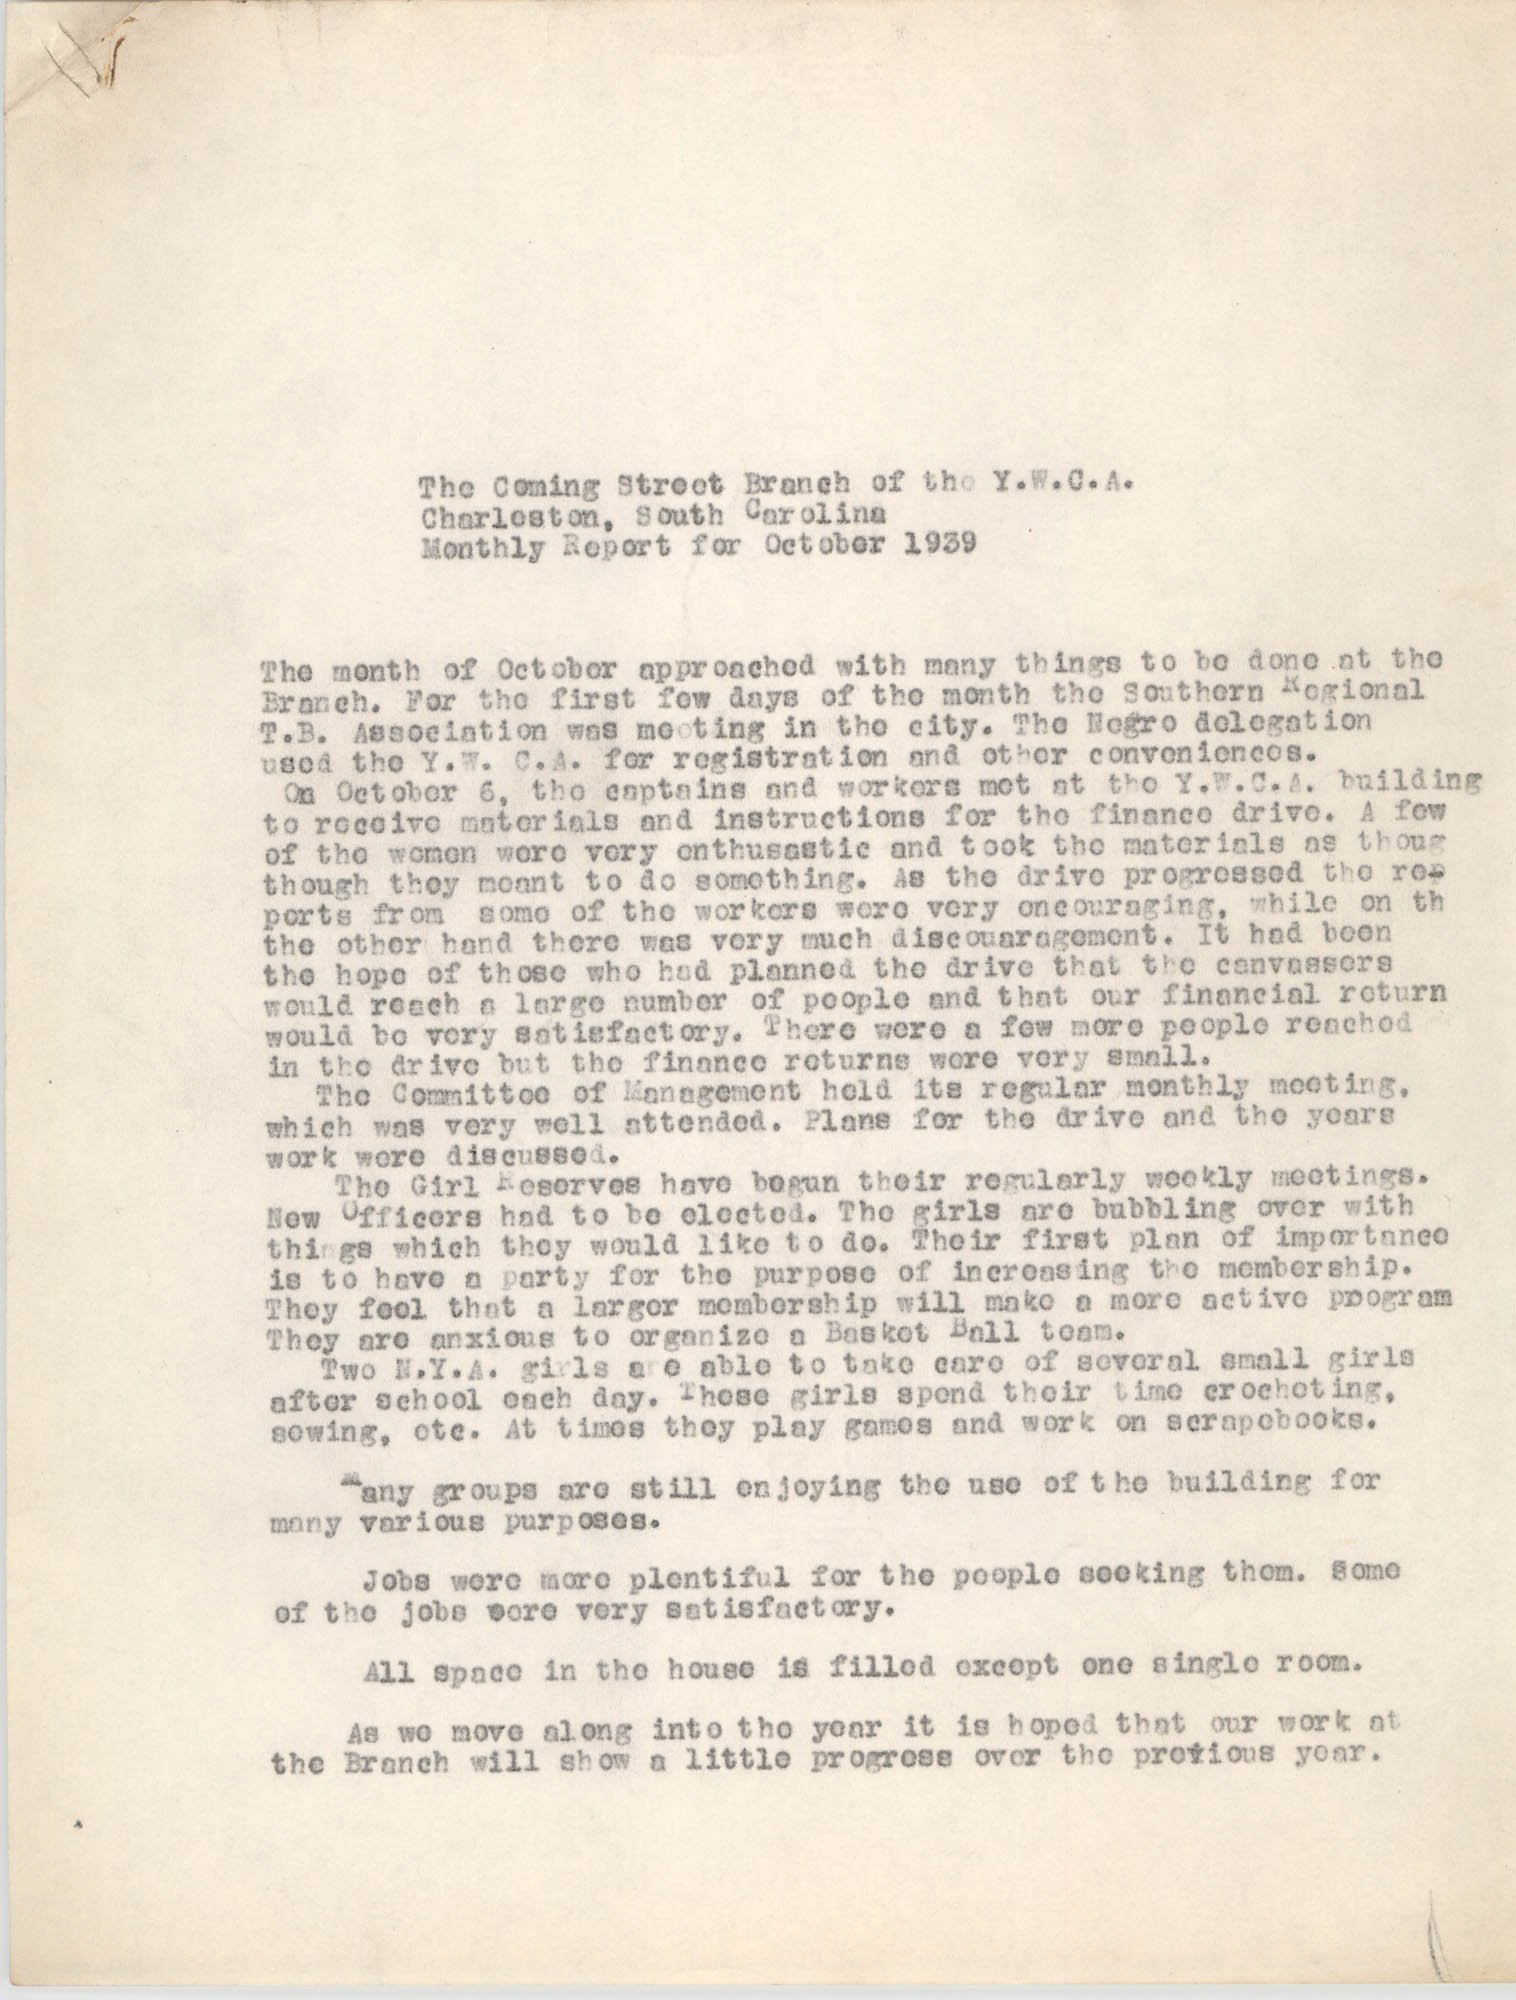 Monthly Report for the Coming Street Y.W.C.A., October 1939